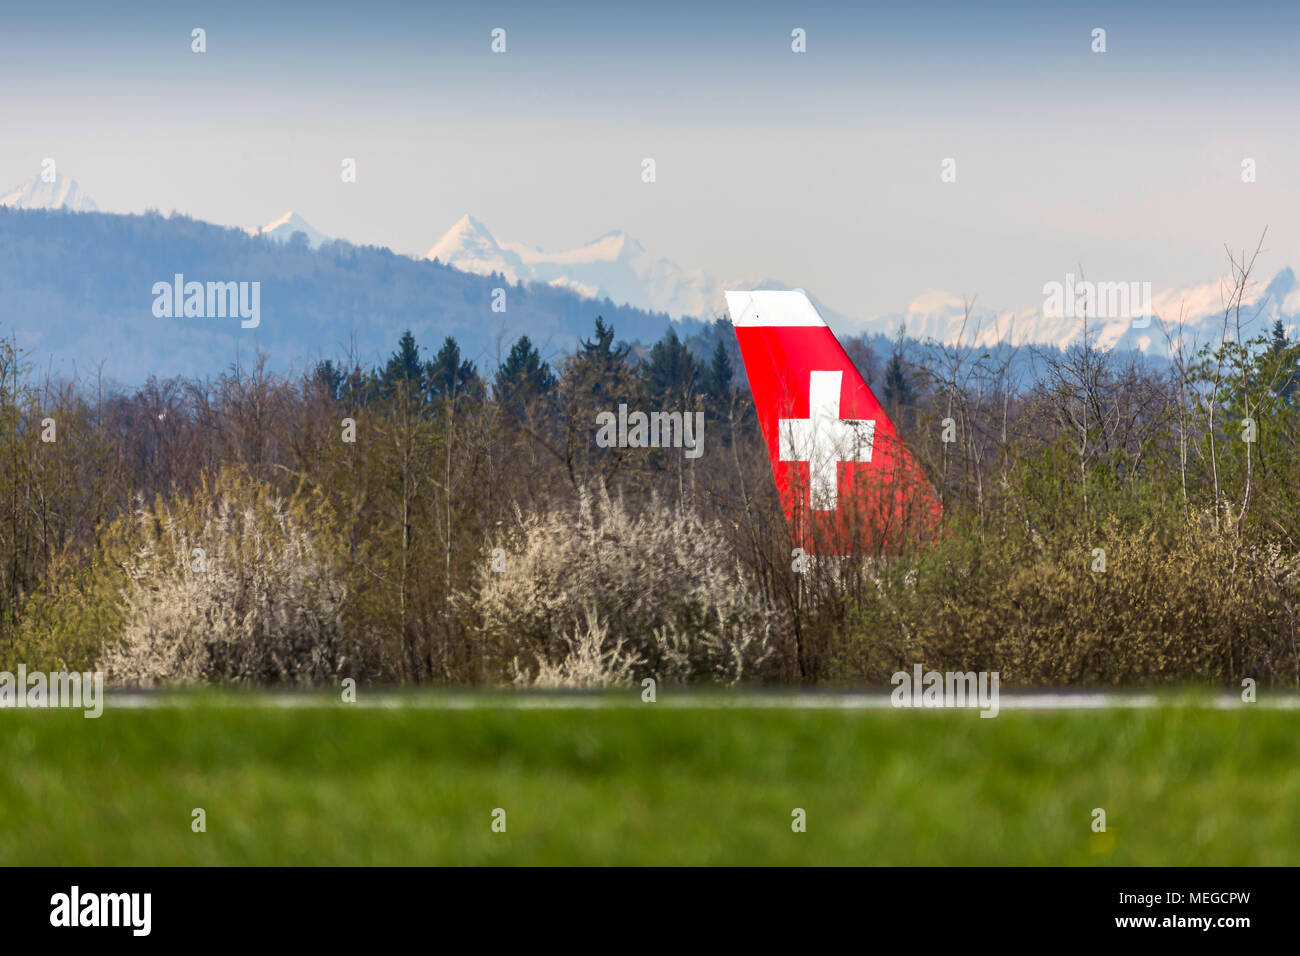 Airport Zuerich ZRH, Airplane taxiing to take-off position, tail fin of a Swiss airplane. Behind snow covered Alps. - Stock Image